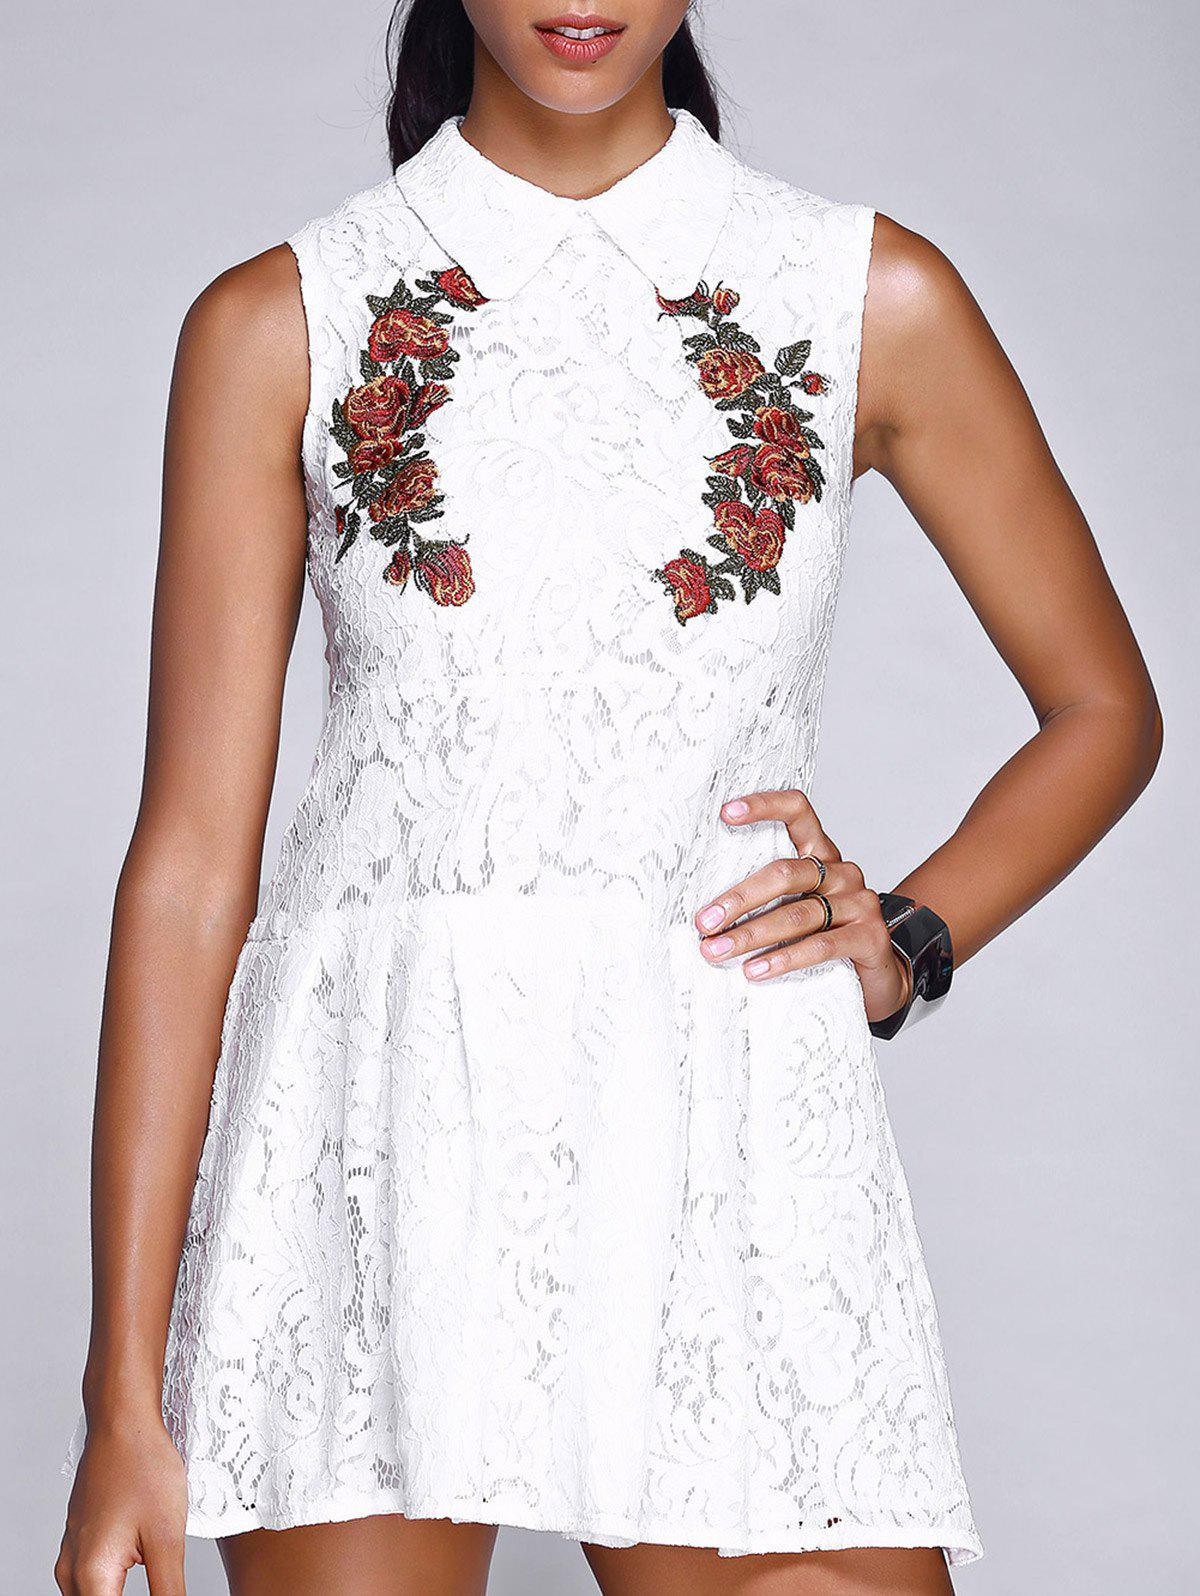 Peter Pan Collar Floral Embroidered Pleated Ladylike Women's Lace Dress - WHITE L